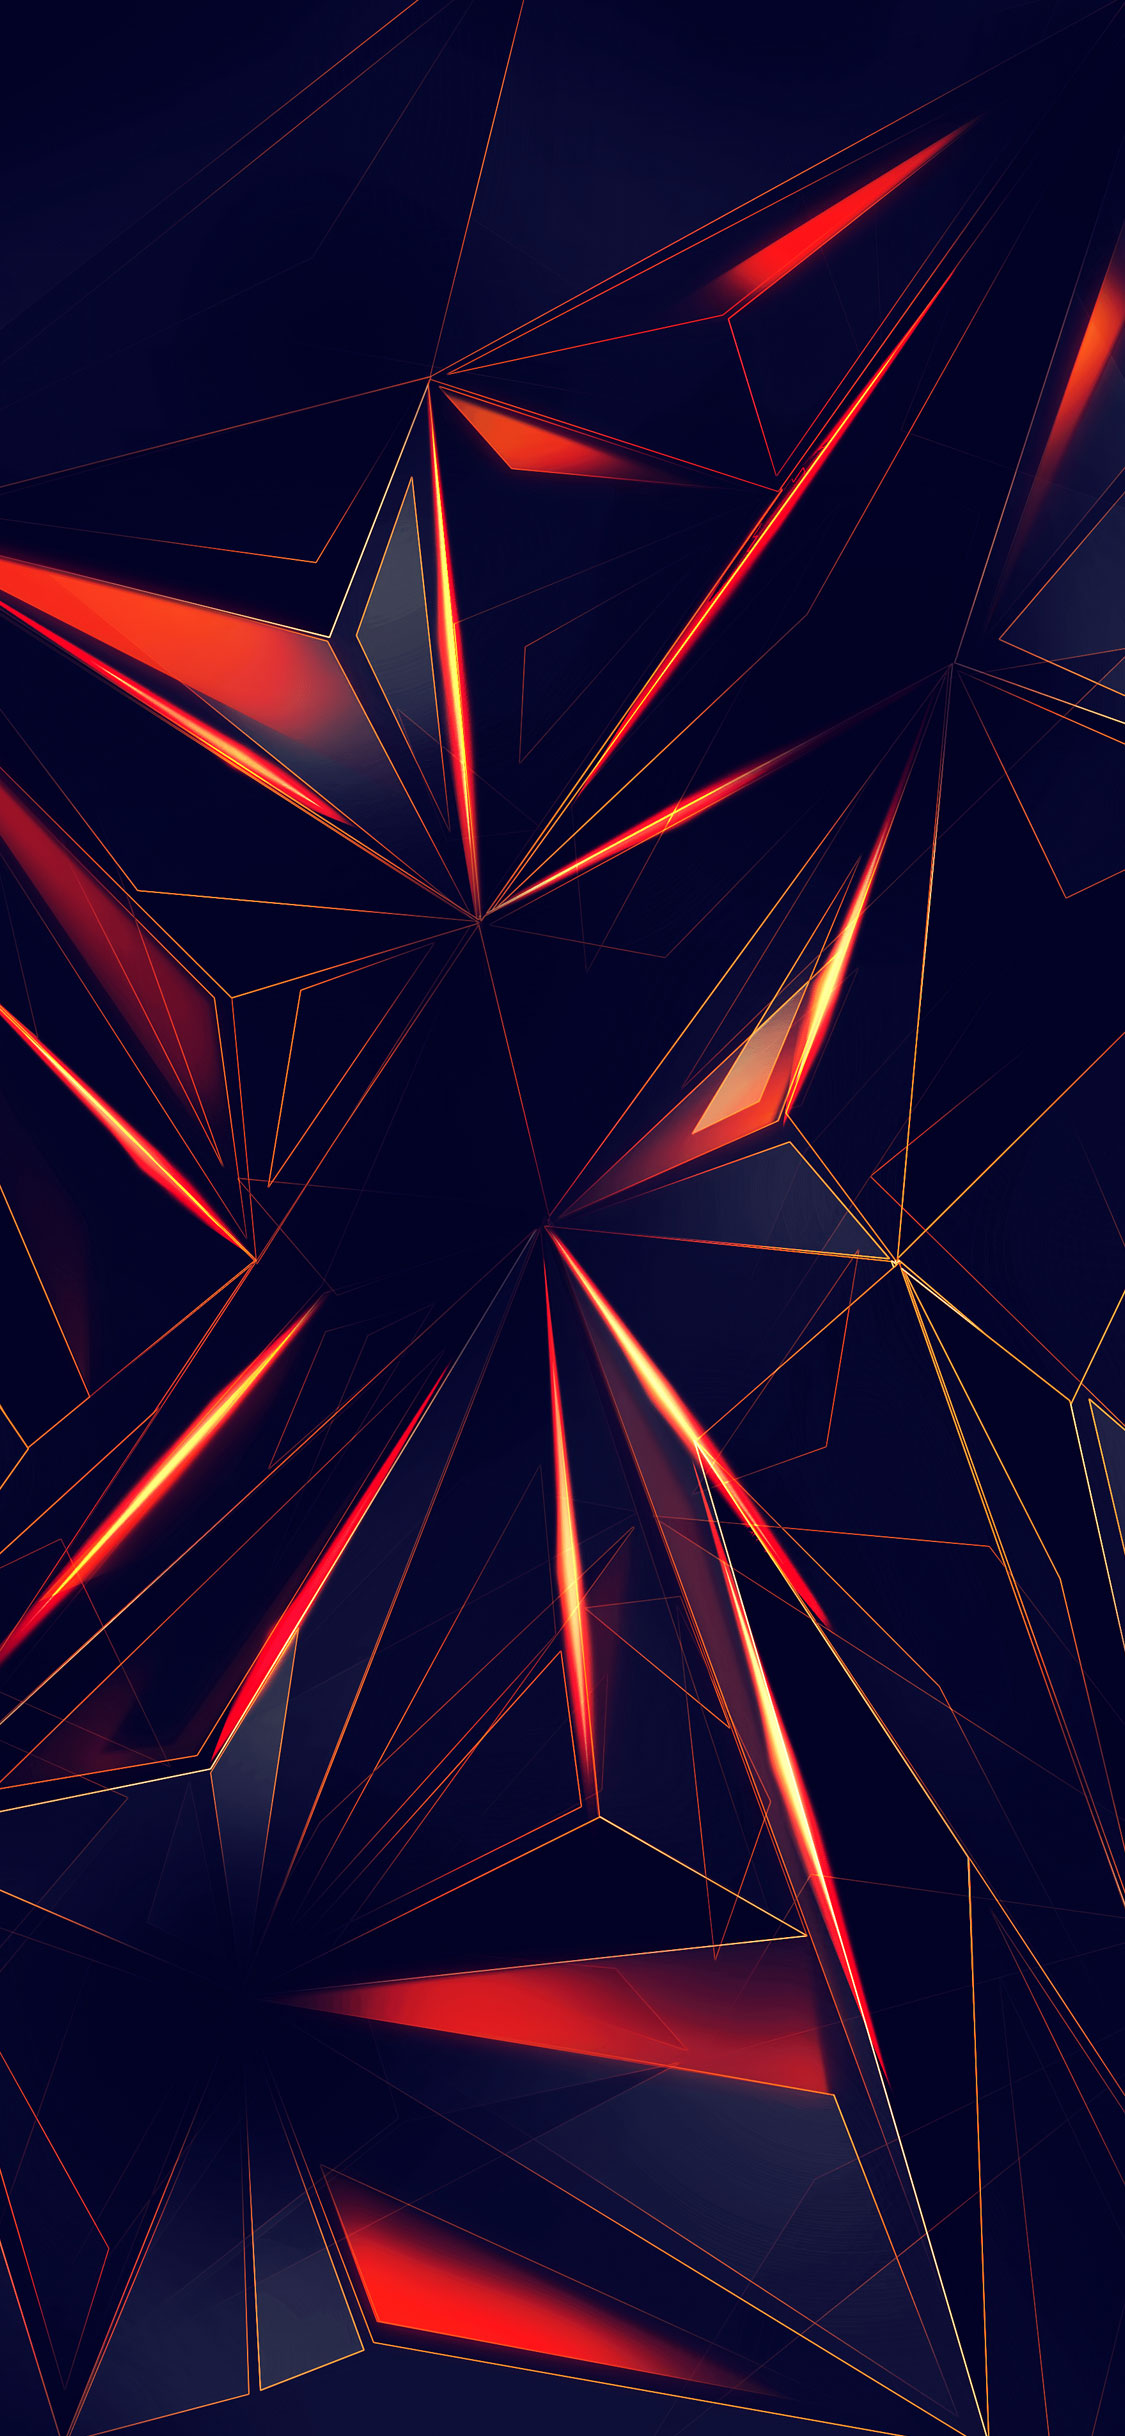 60 Latest Best Iphone X Wallpapers Backgrounds For Everyone